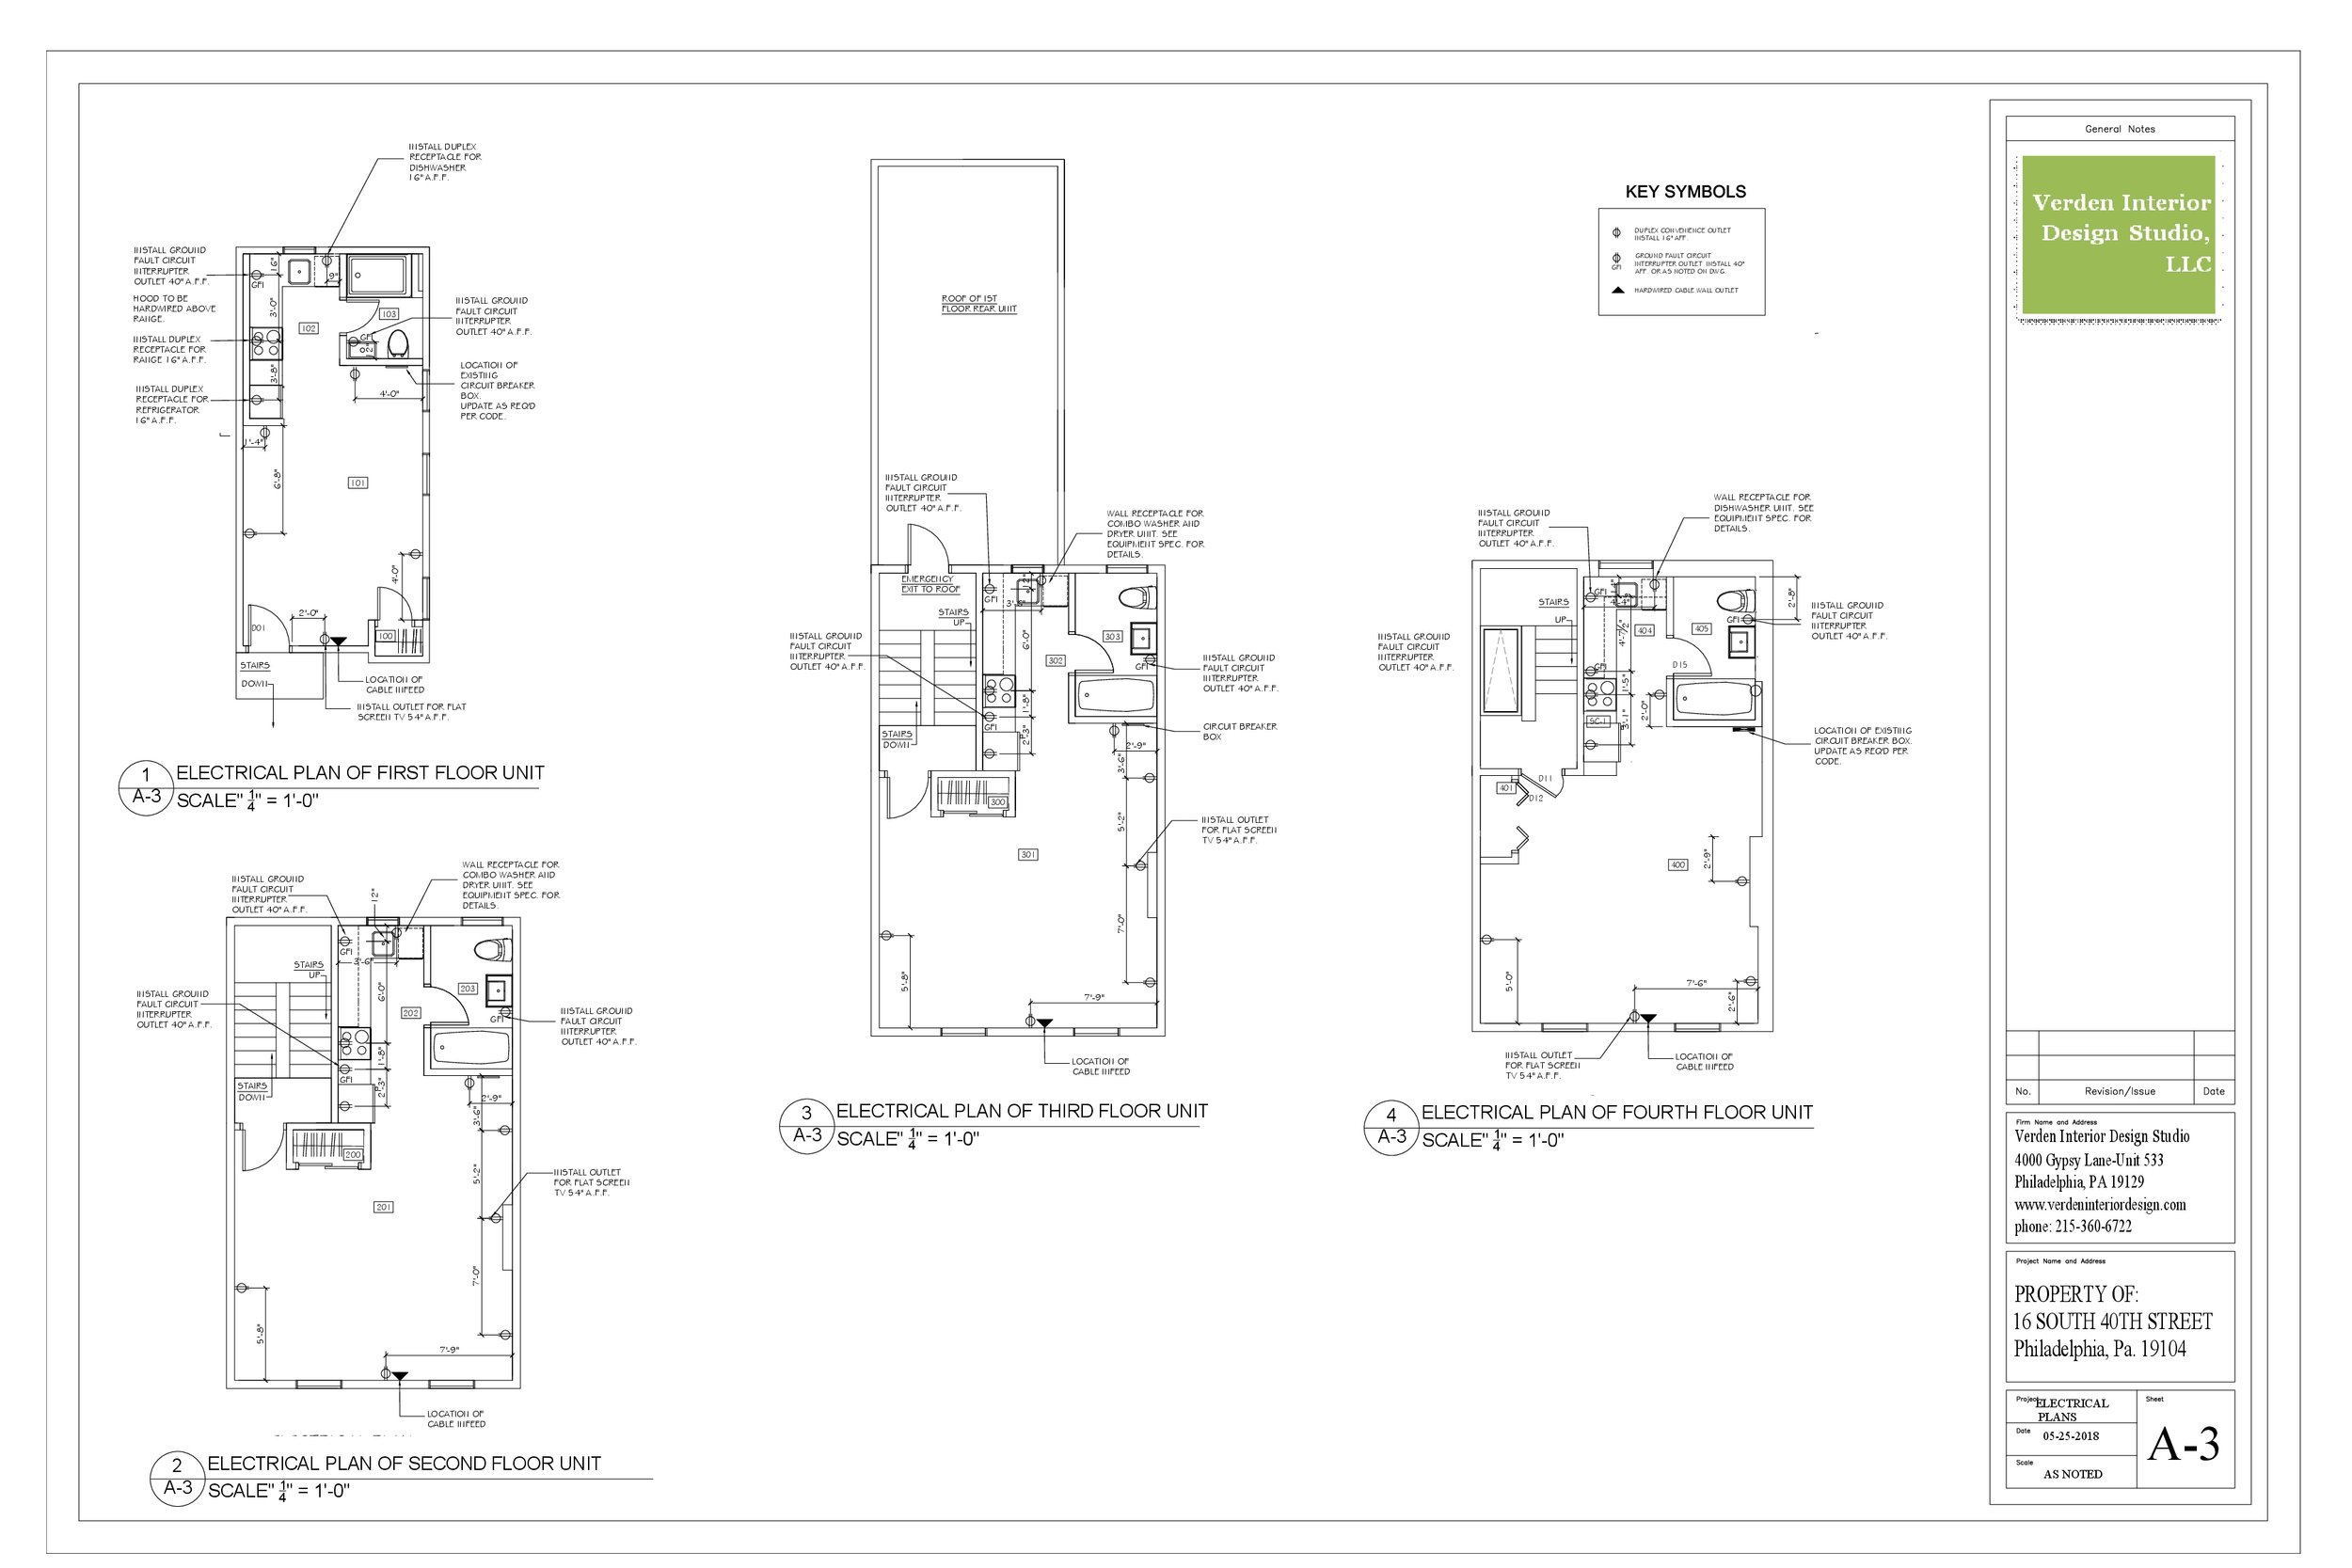 cad space plans_16south40th-A-3.jpg